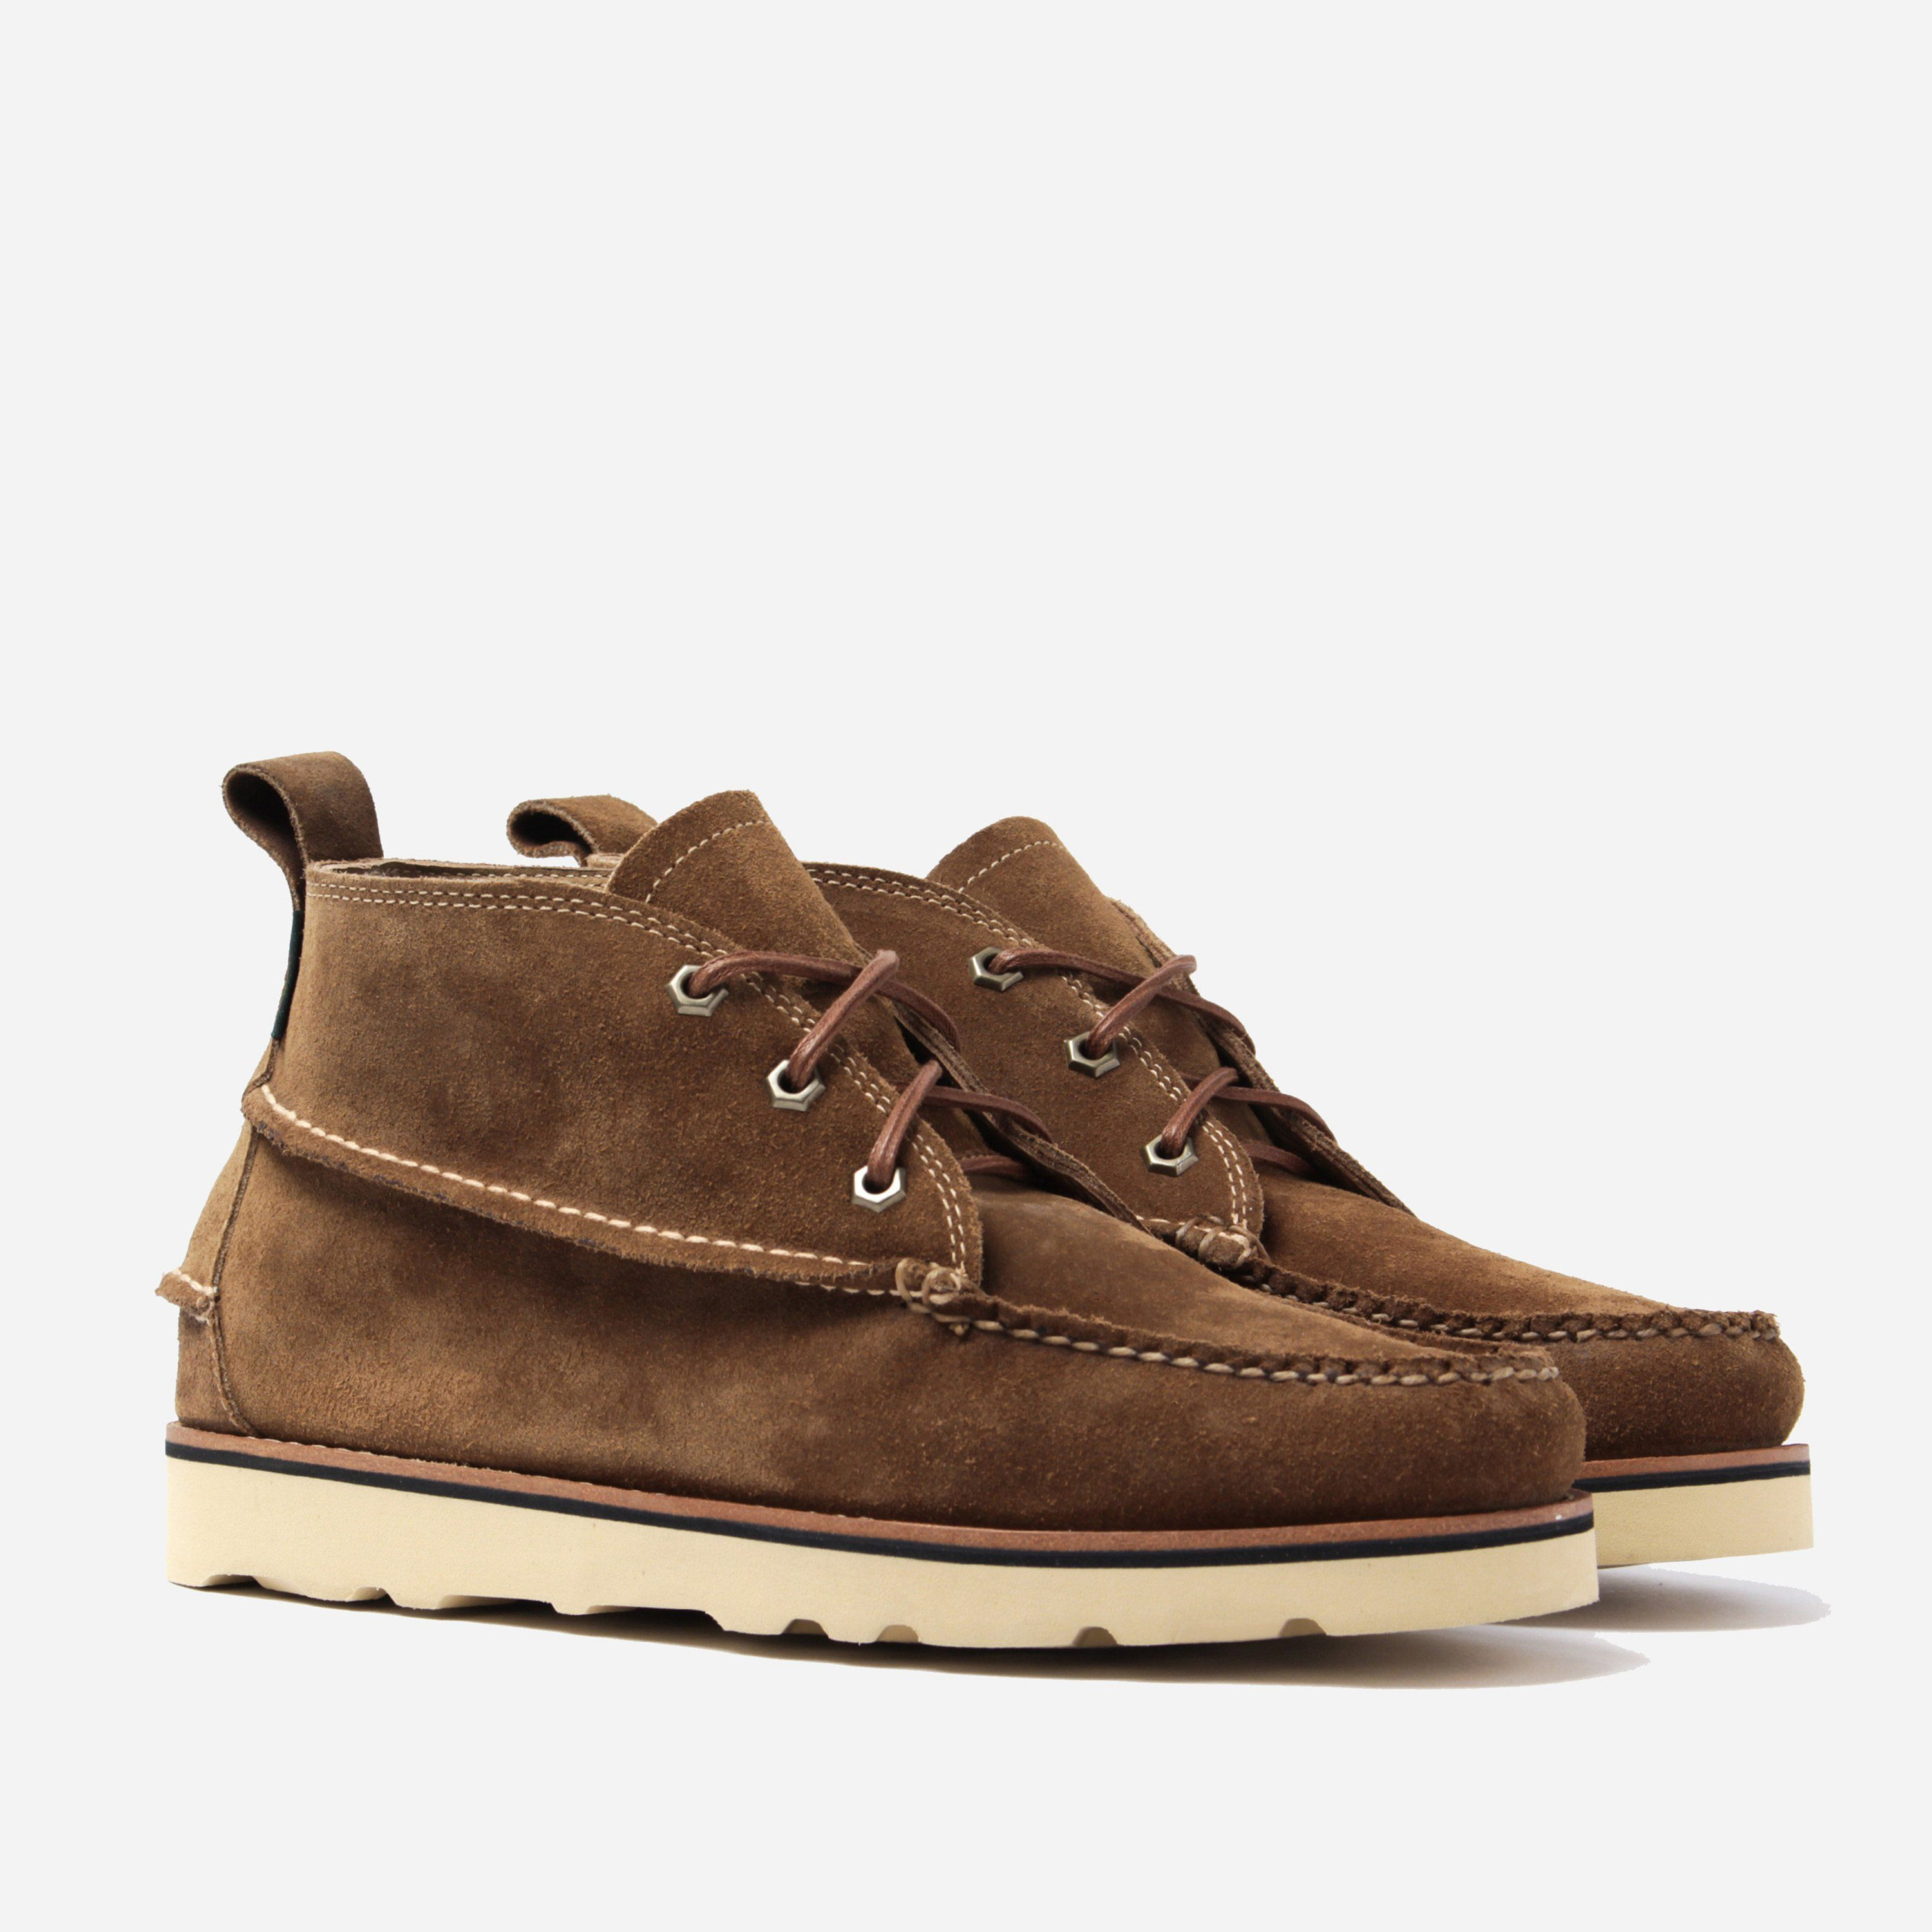 G.H. Bass & Co. Ranger Wedge Mid Boot Suede - Mid Brown